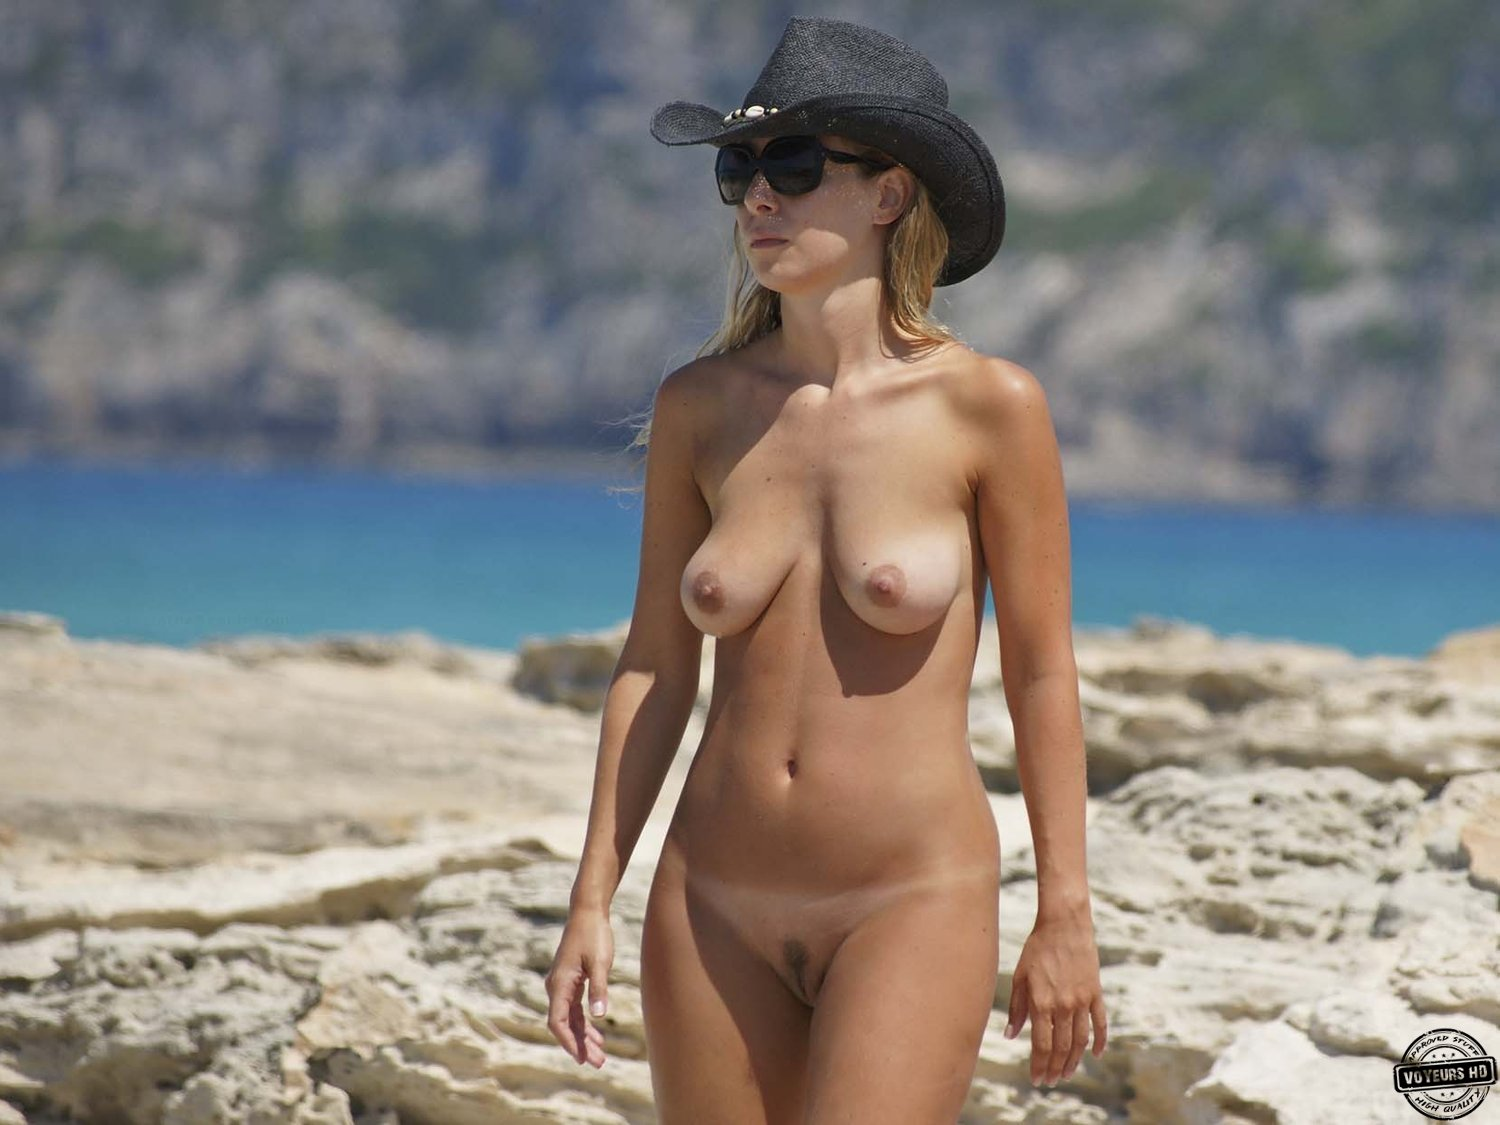 Spying on blonde with smooth body in beach cabin 9